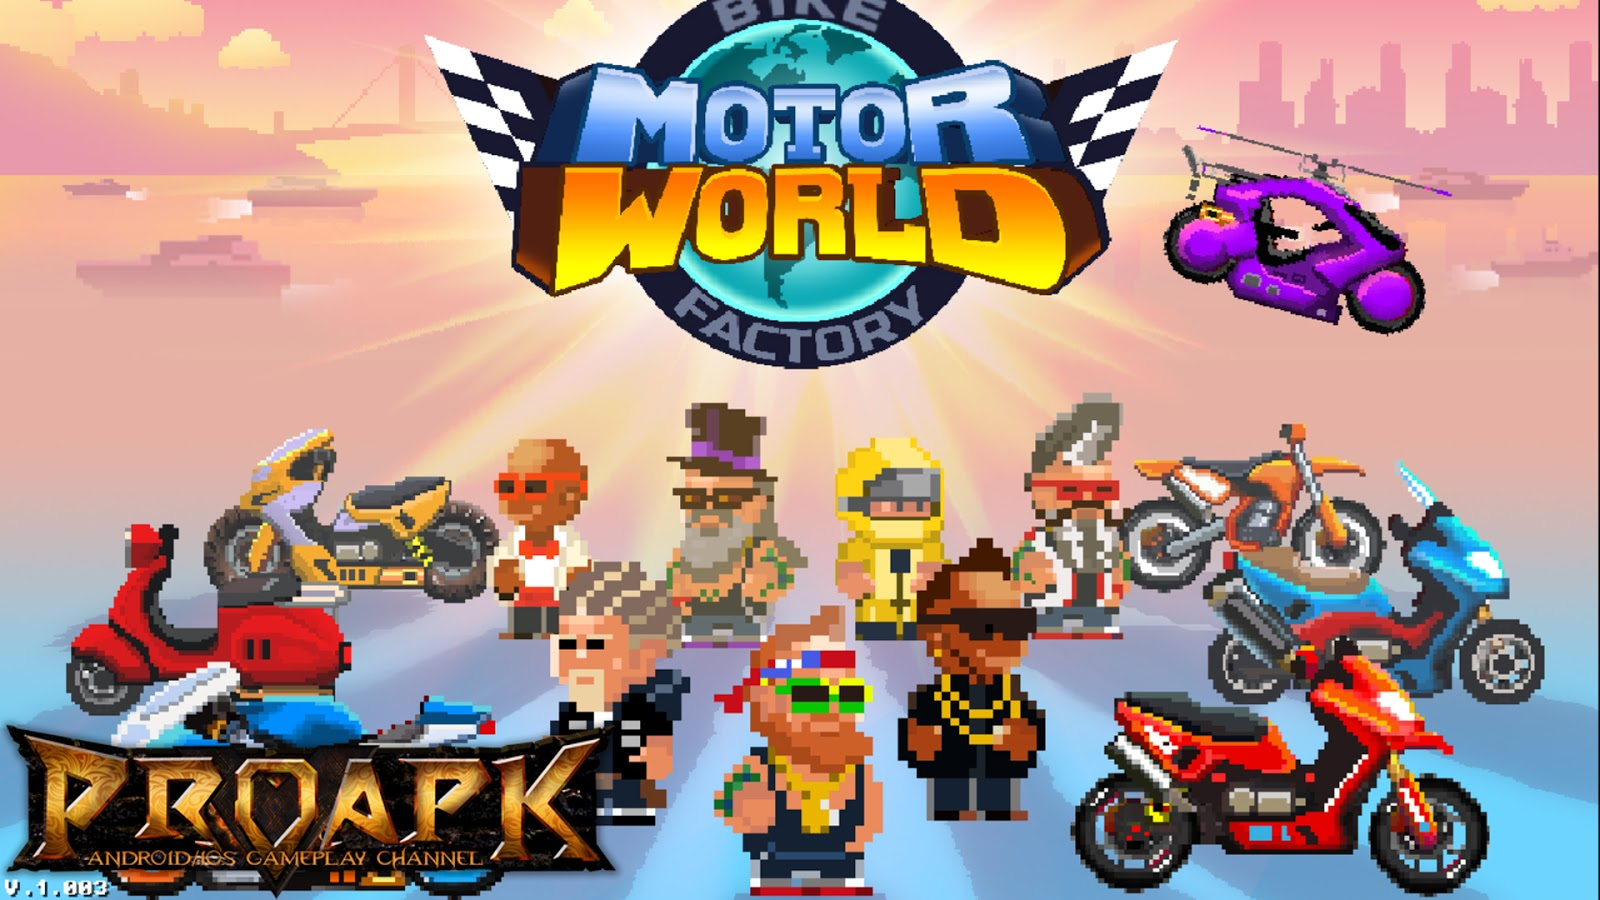 Motor World: Bike Factory